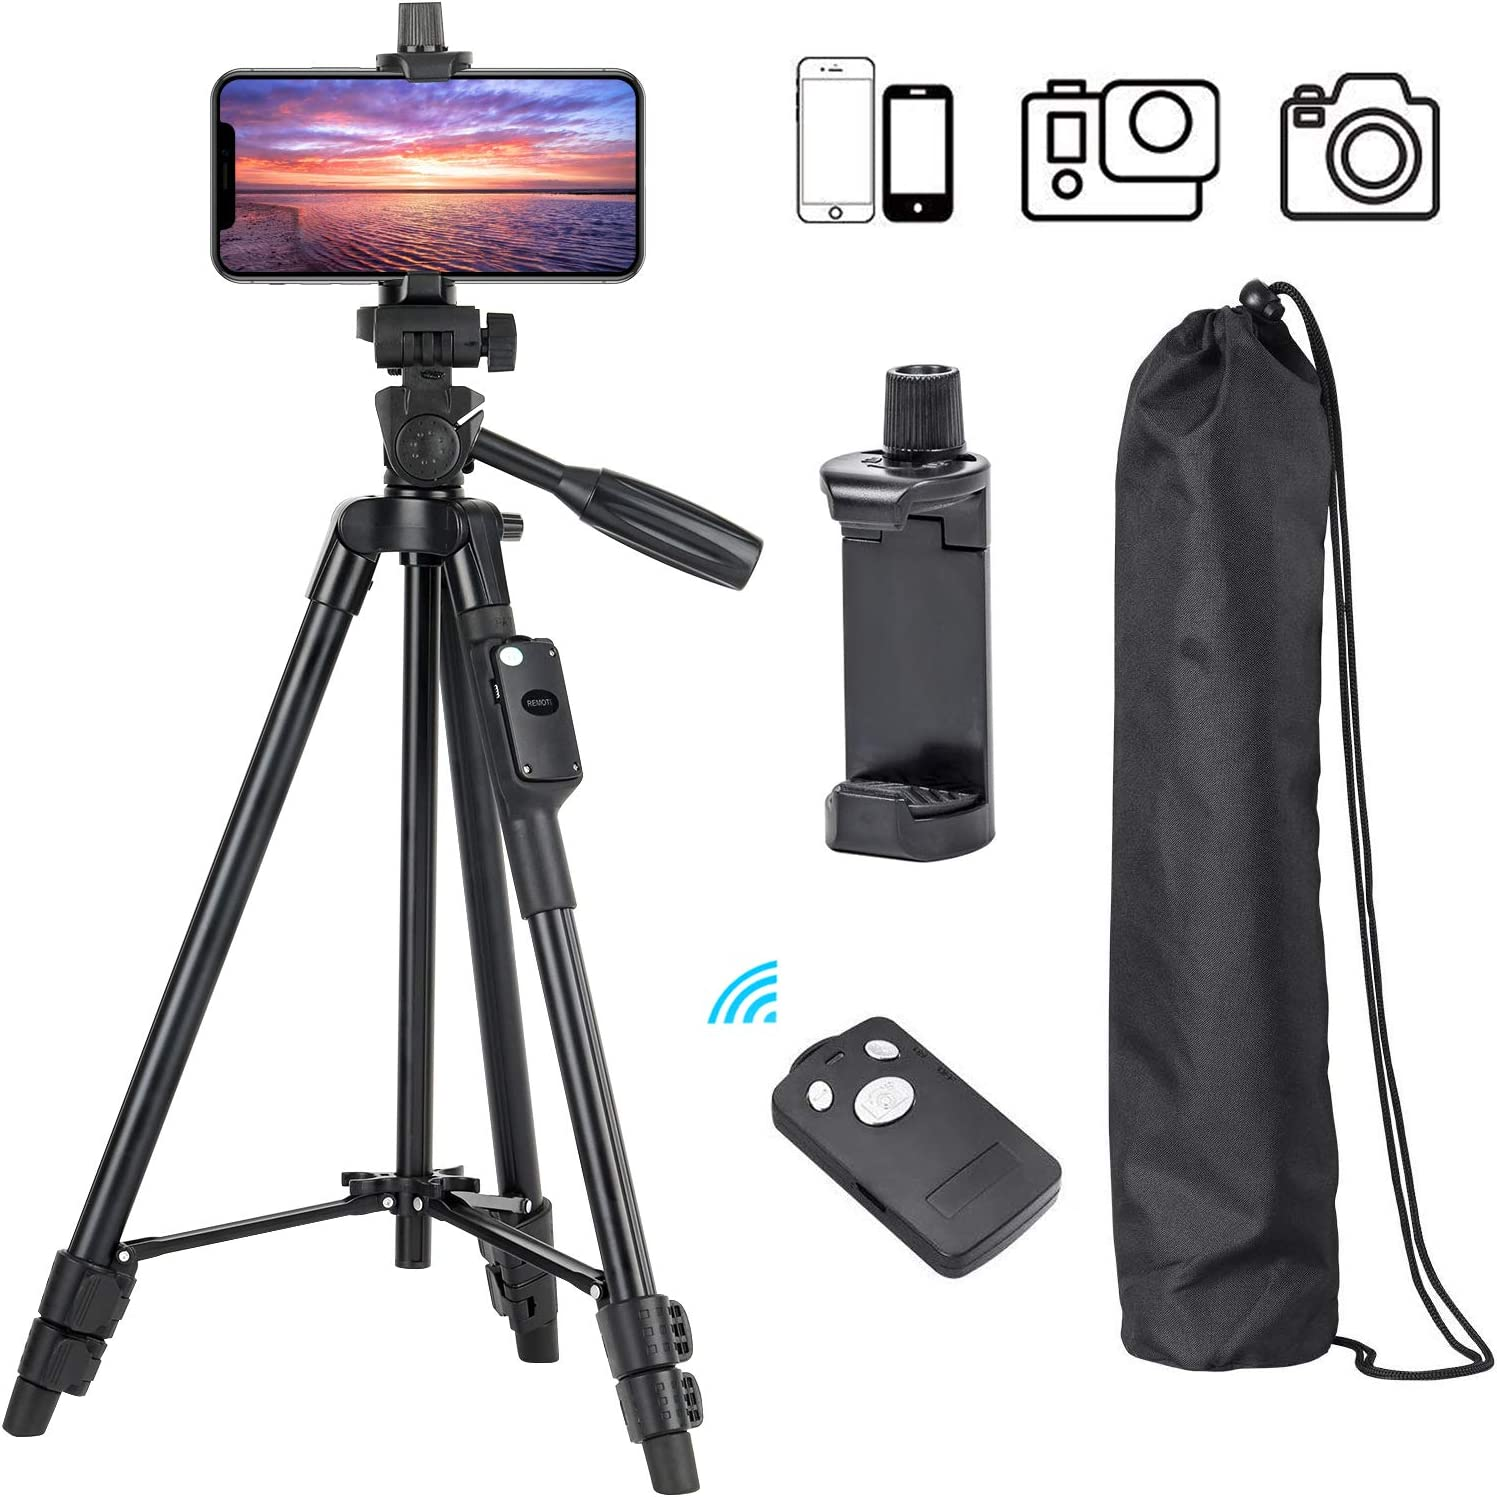 "Phone Tripod, Eocean 50"" Extendable Aluminum Tripod Stand with Phone Holder Mount & Remote, Video Tripod for Cellphone, Camera, Compatible with iPhone/Android, Perfect for Vlogging, Live Streaming"